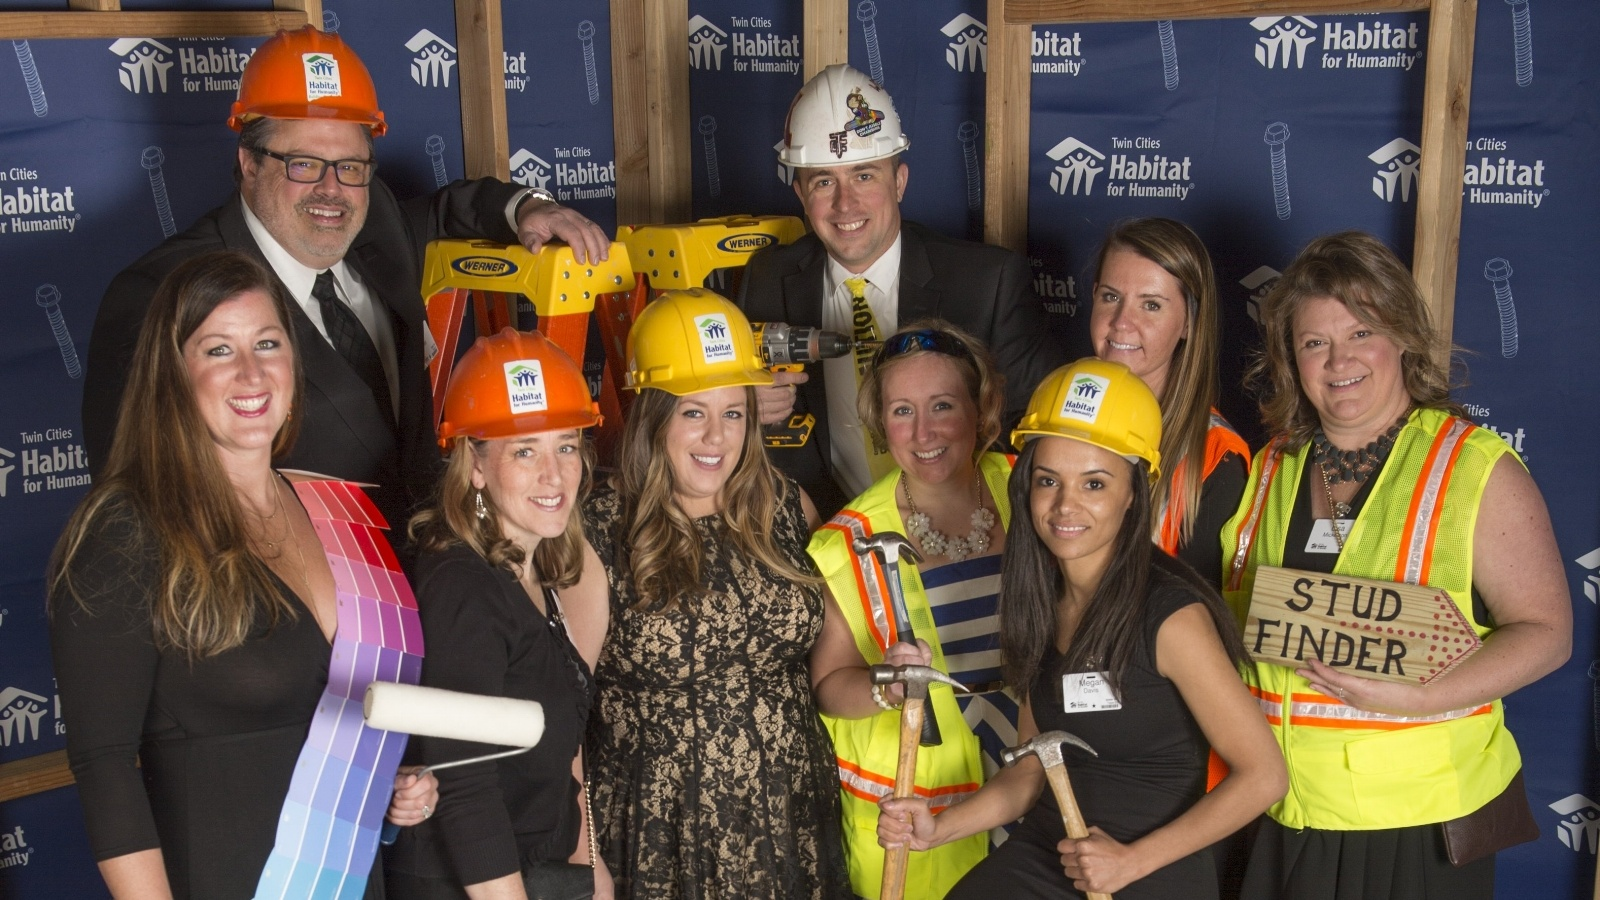 Hard Hat & Black Tie Guest Group